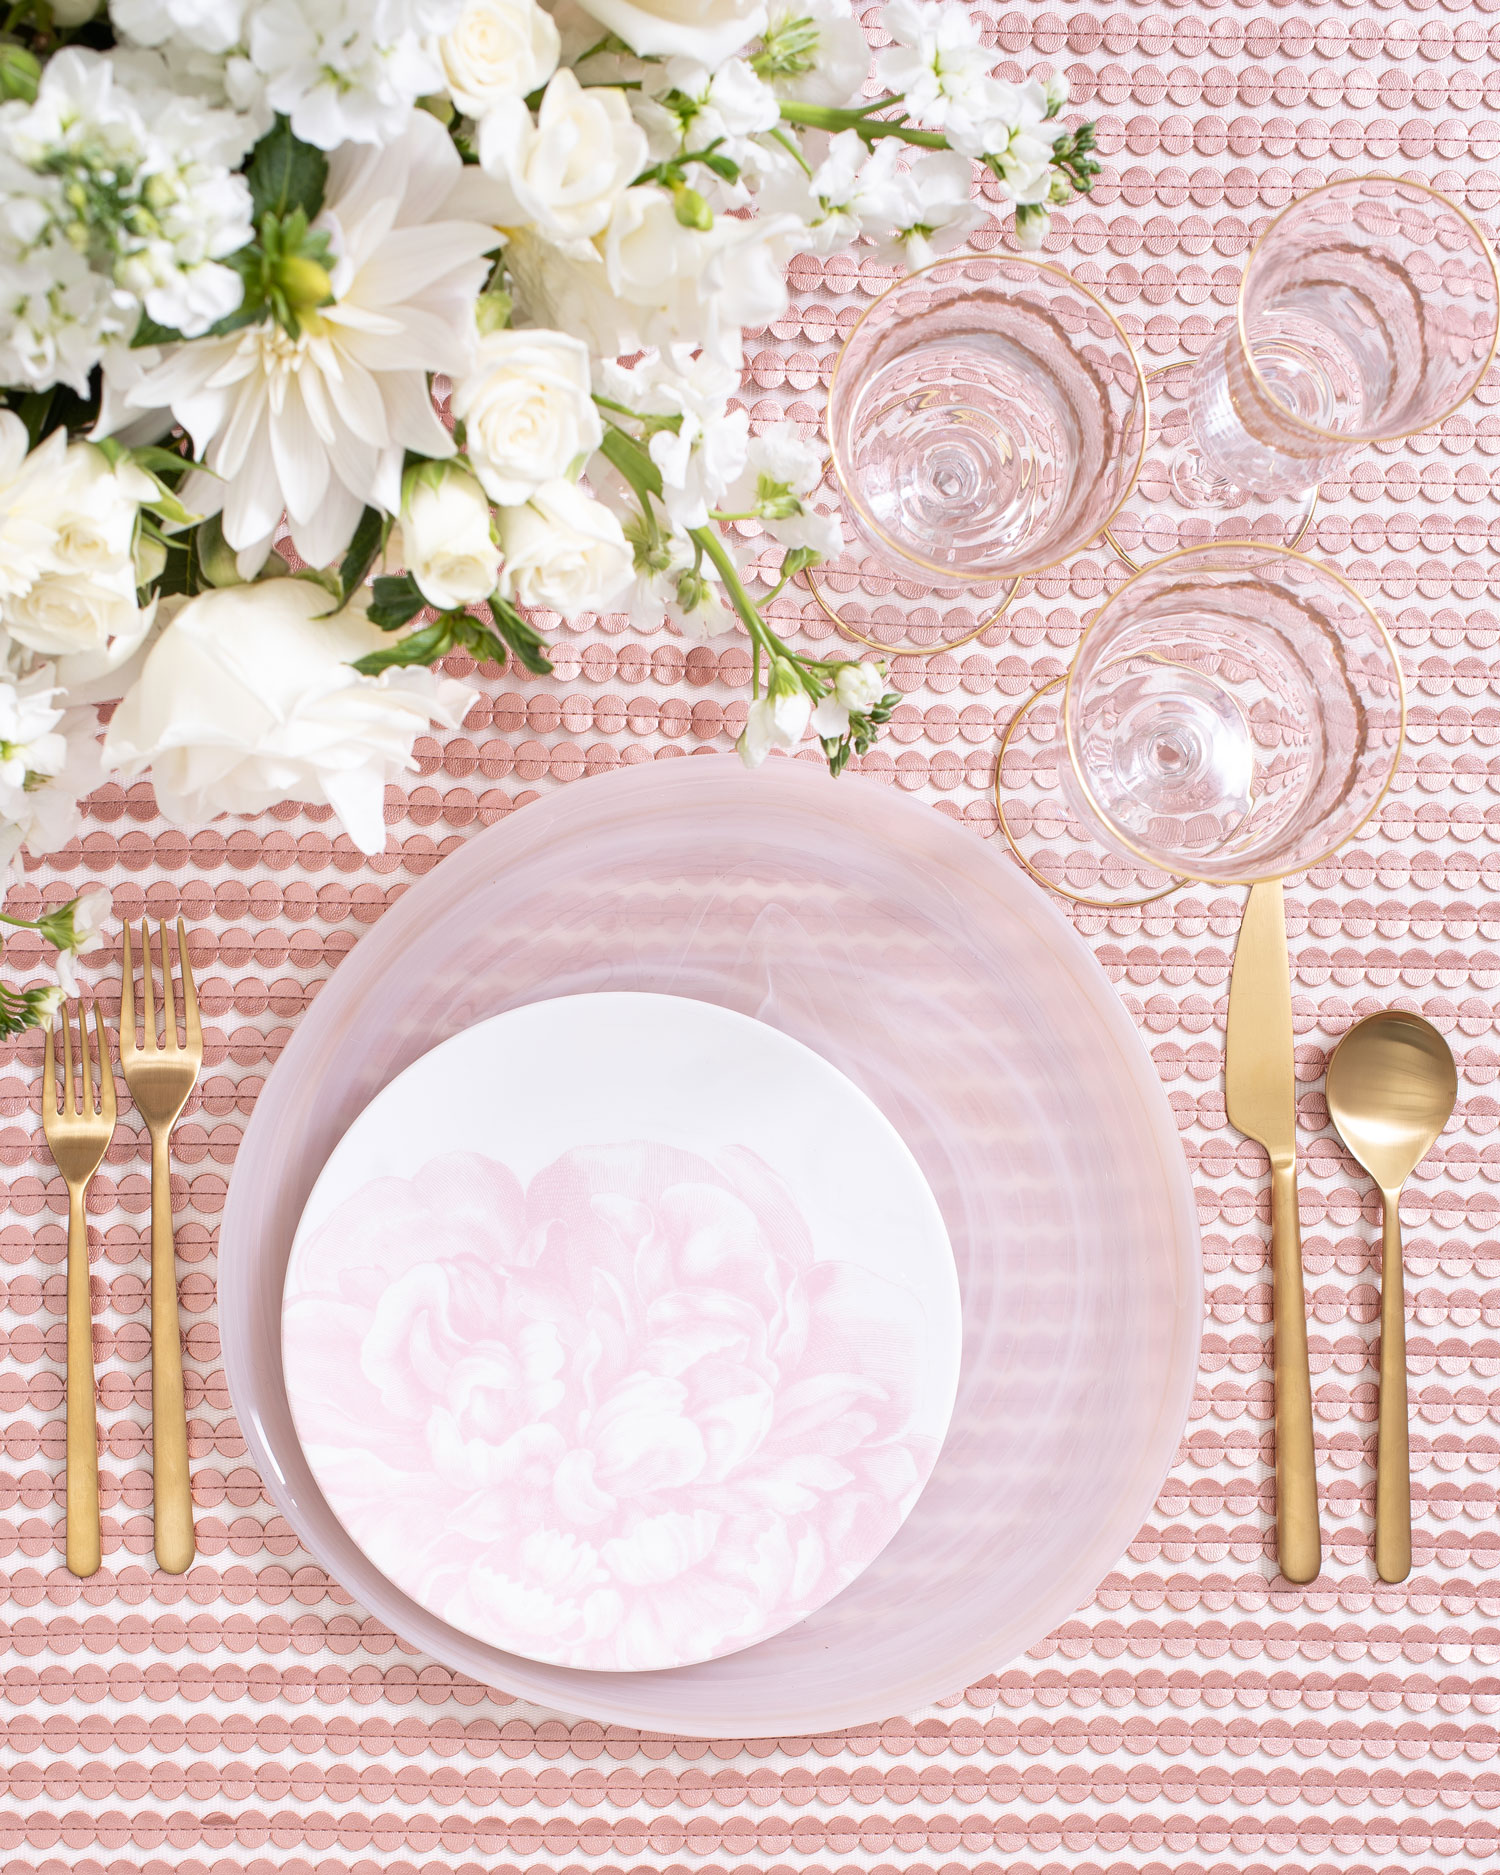 Maison de Carine tabletop company pink flower print wedding tabletop place setting ideas